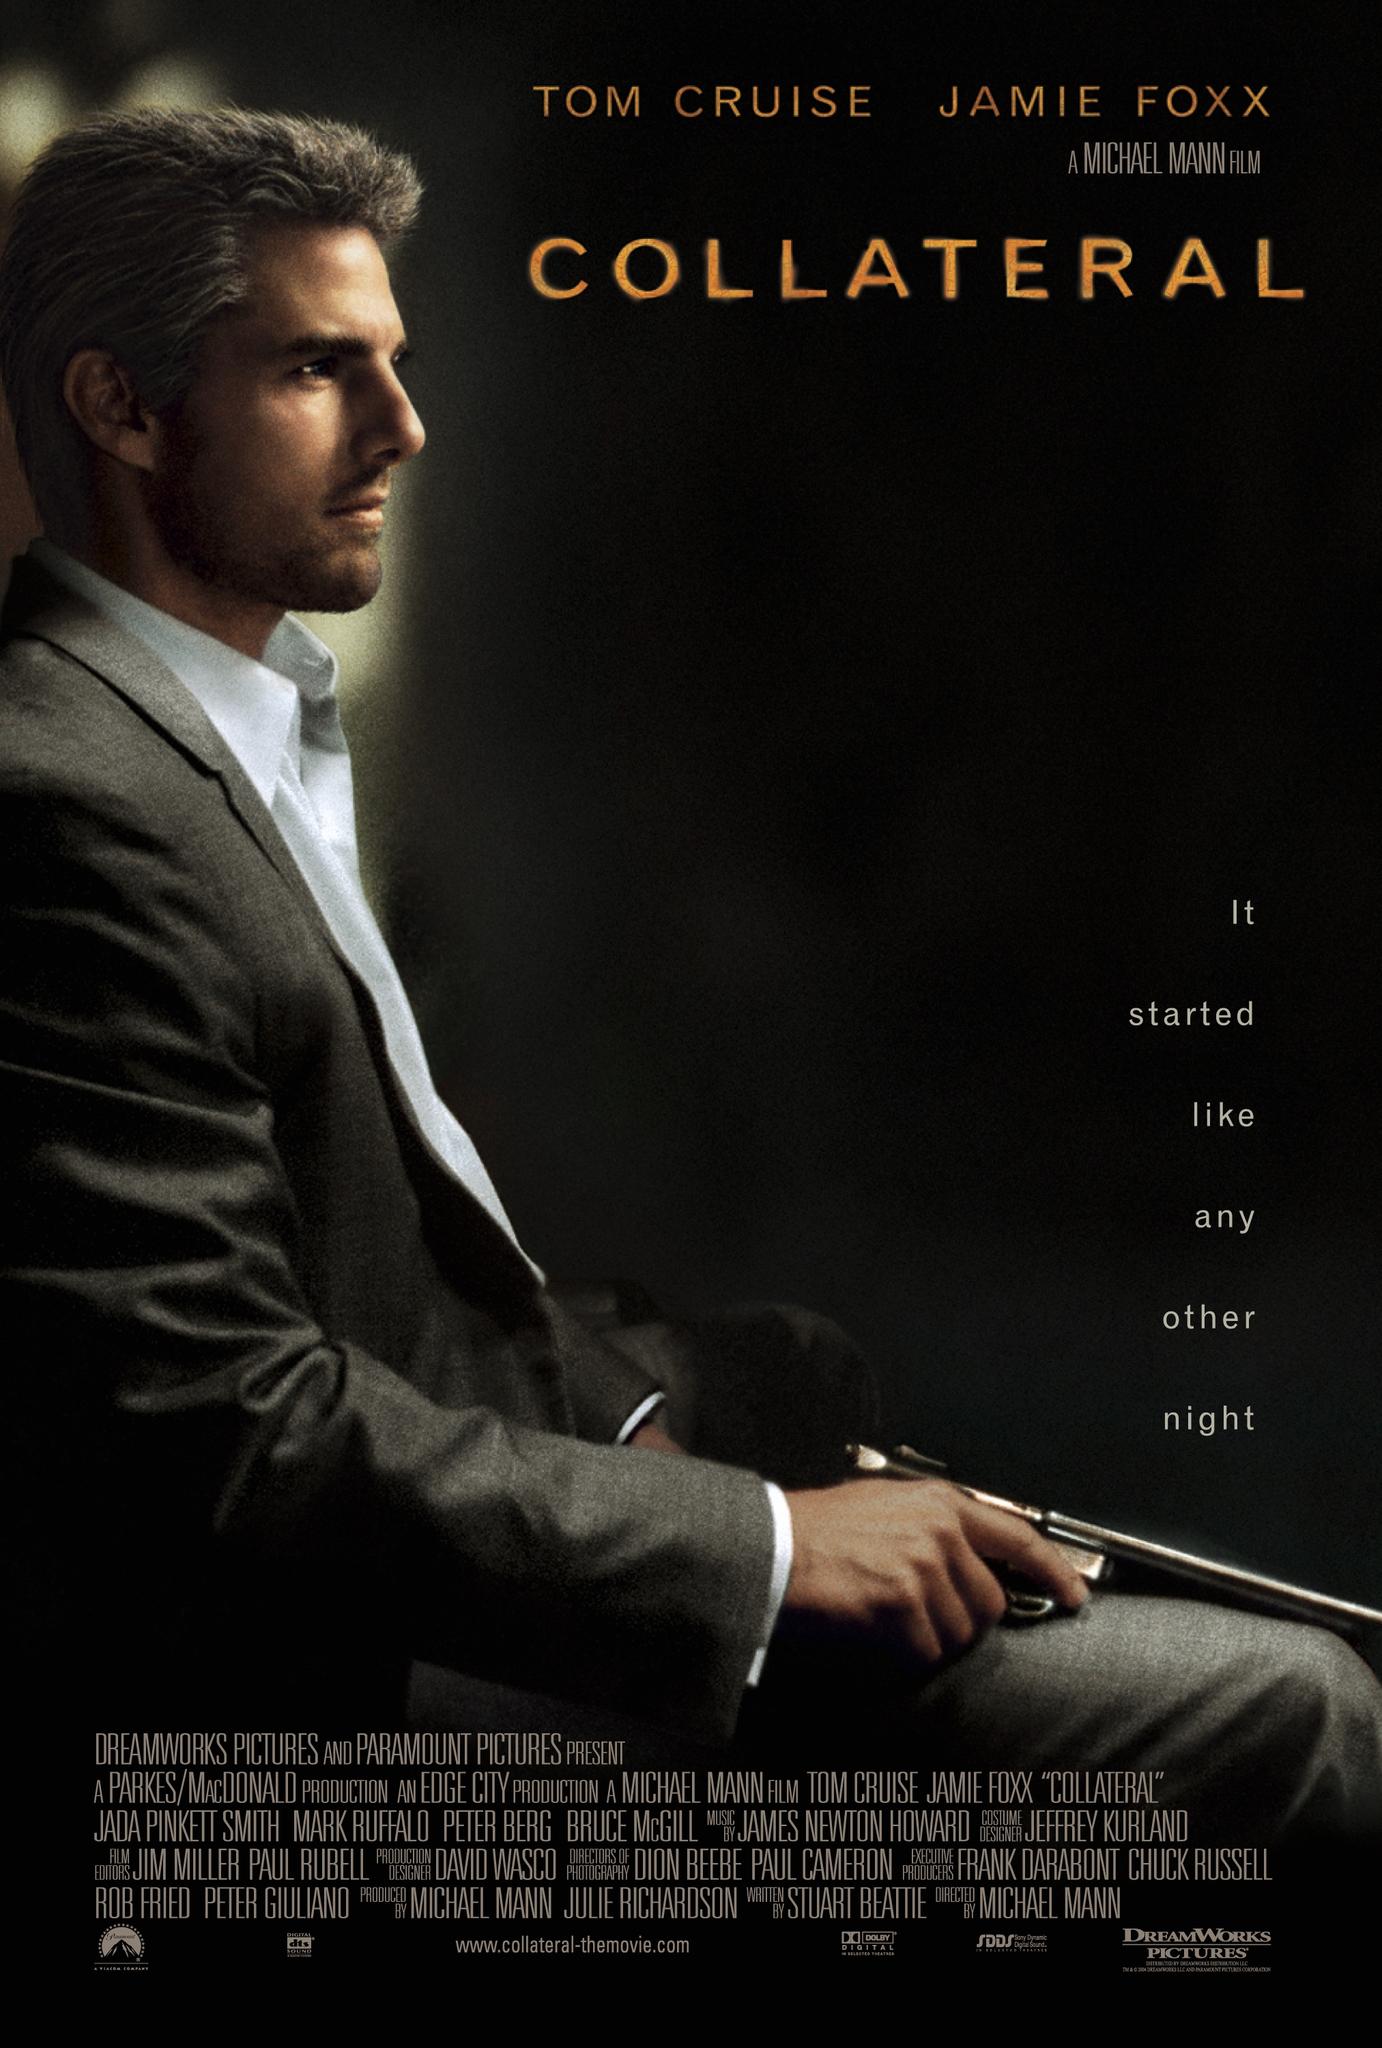 S1 E4 PSYCHOPATHY 101 - Murder, cab rides, and coyotes: This time out, we're talking about 2004's Collateral, which Tracy had never seen. It's a great movie, and it also turns out to be a textbook look at being a psycho. (In a fun way, we swear.) We also talk Jason Statham, dueling Anthony Hopkins impressions, and the kickass car chase from the best Bourne movie.Listen and subscribe here.